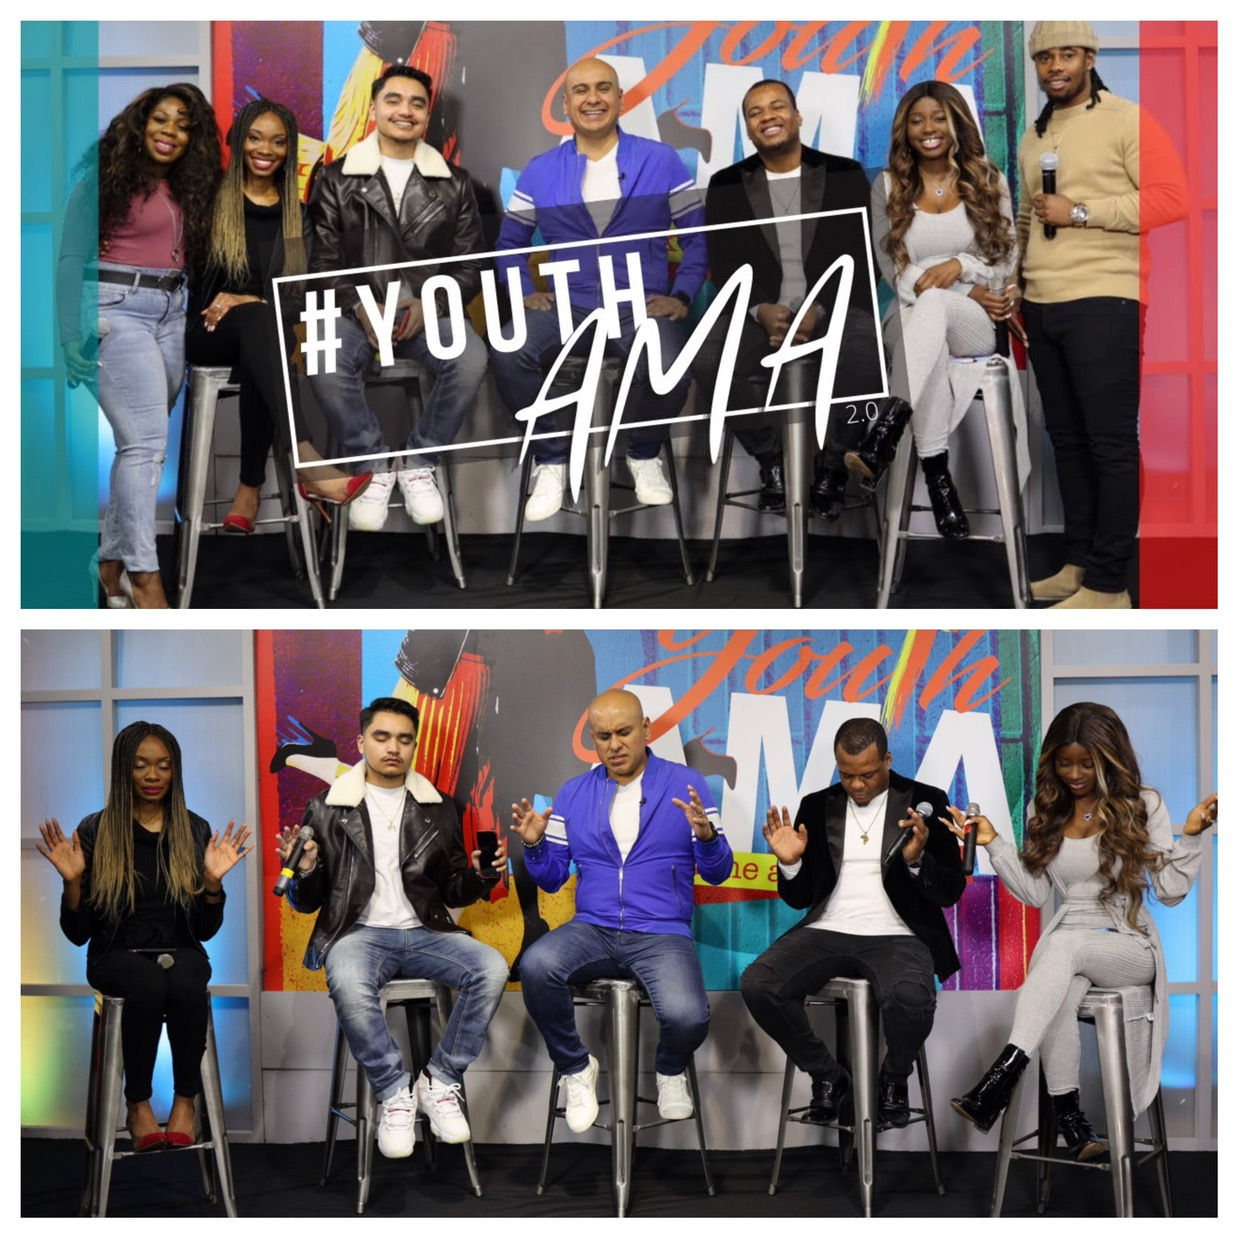 #CENorthYork's Youth AMA was a